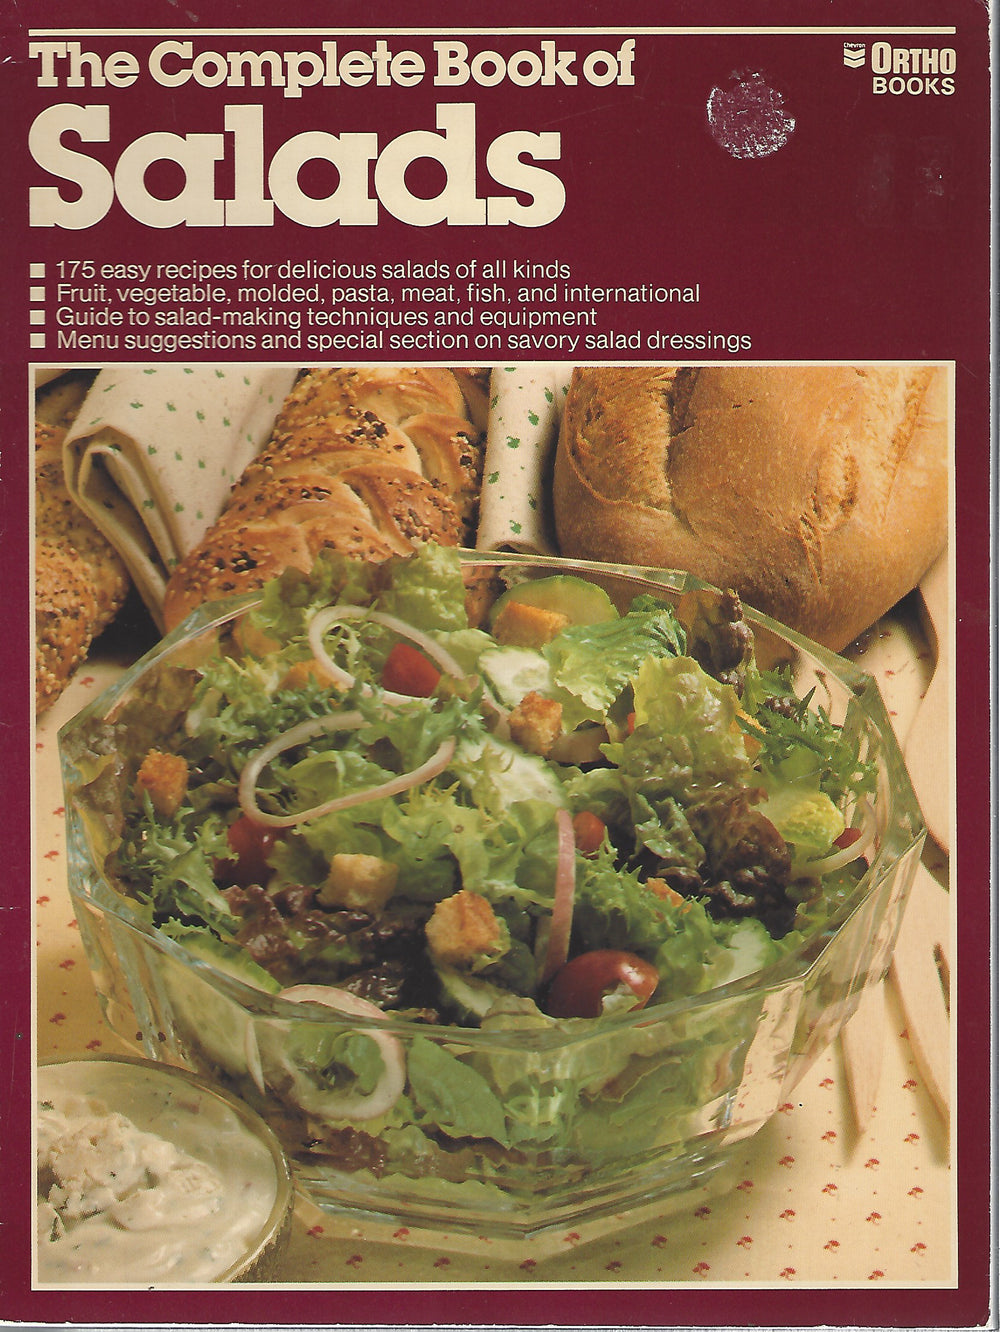 The Complete Book of Salads by Ortho Books   Softcover   (1981)